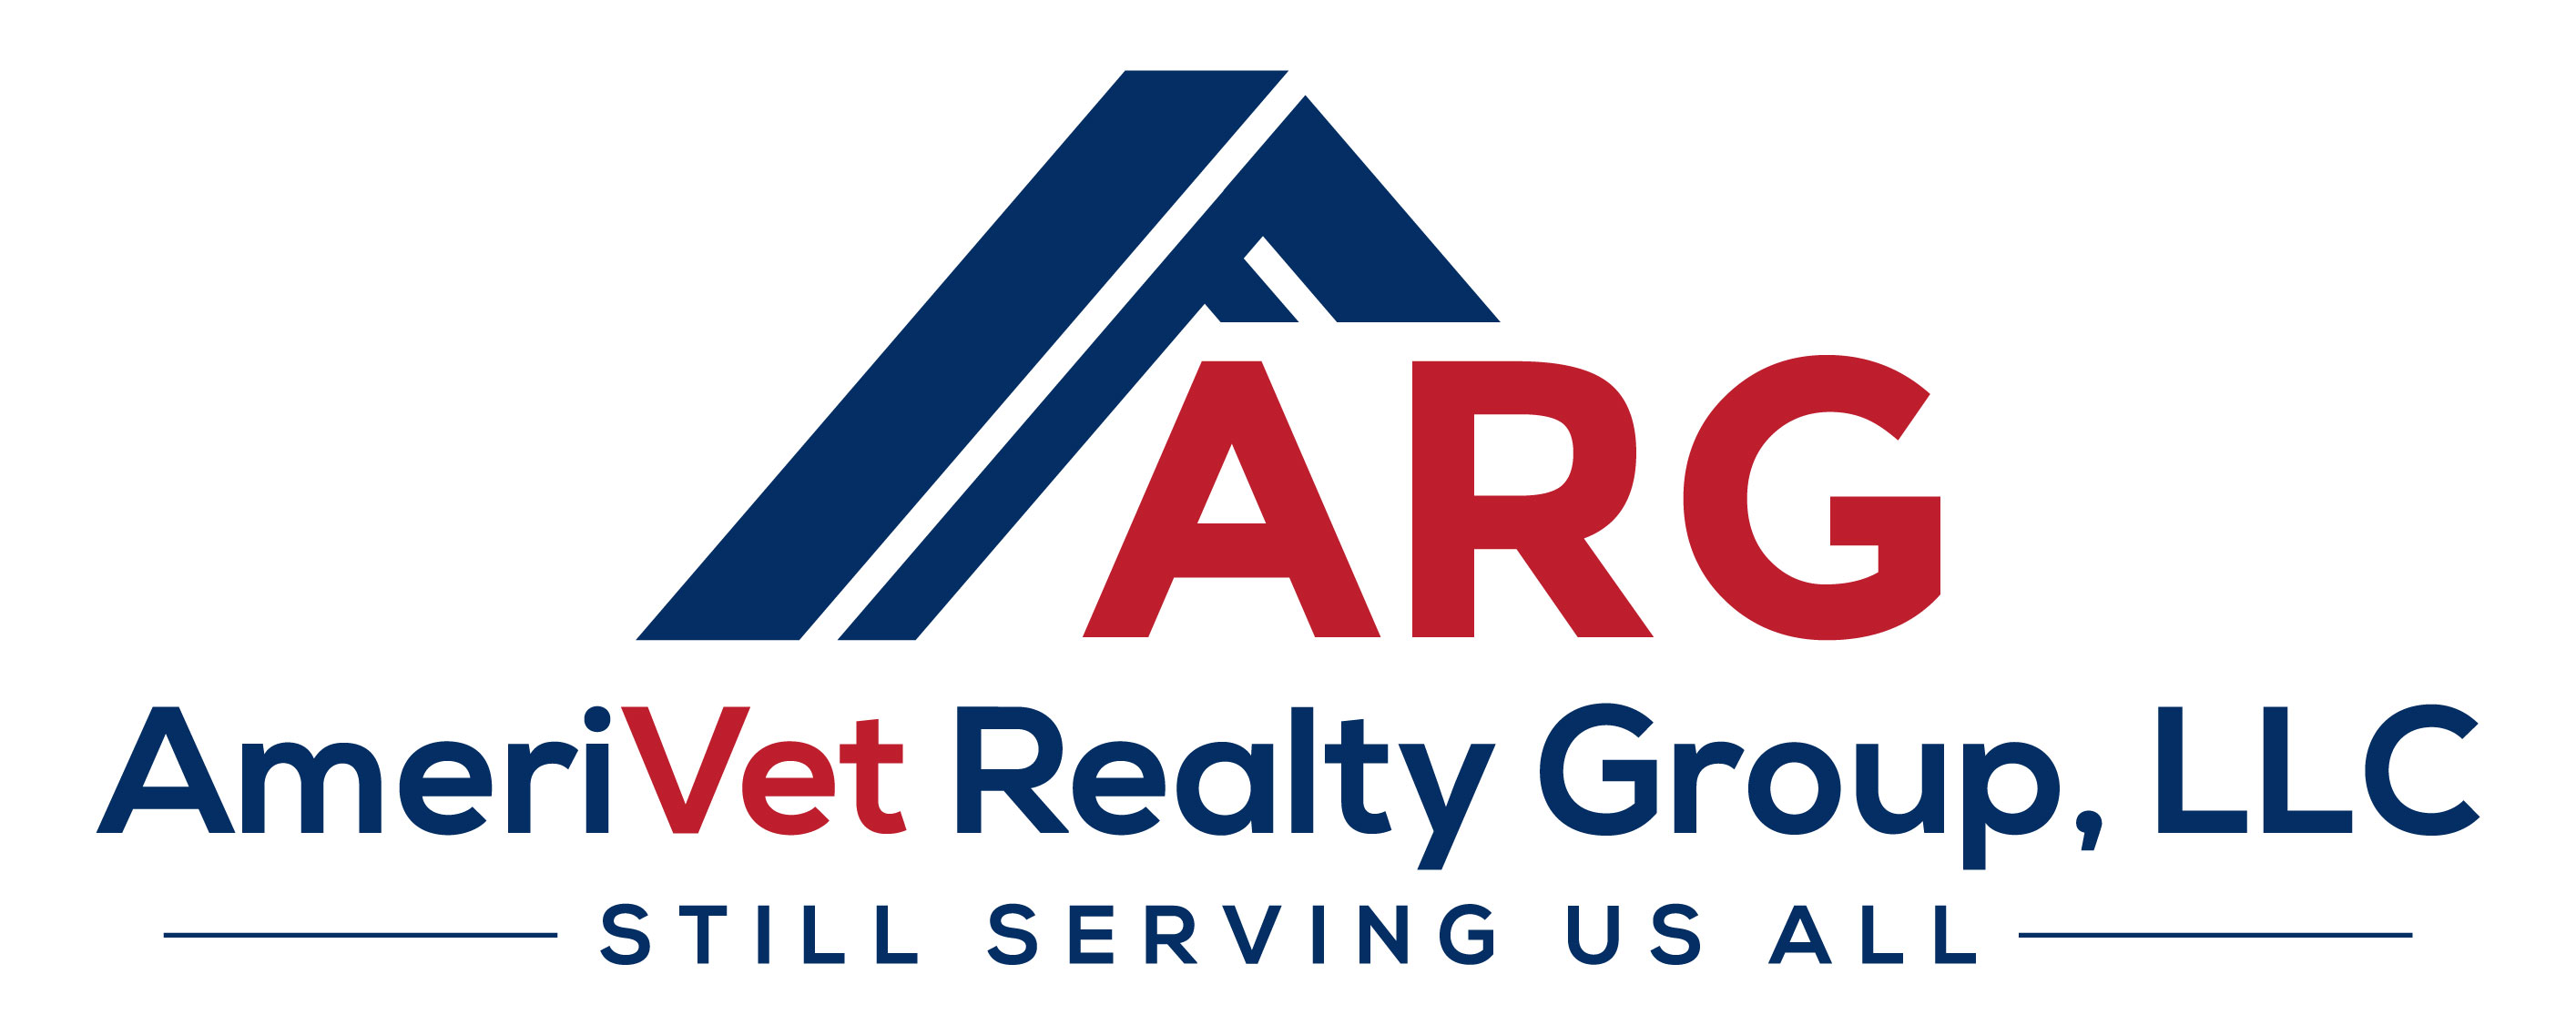 Amerivet Realty Group LLC